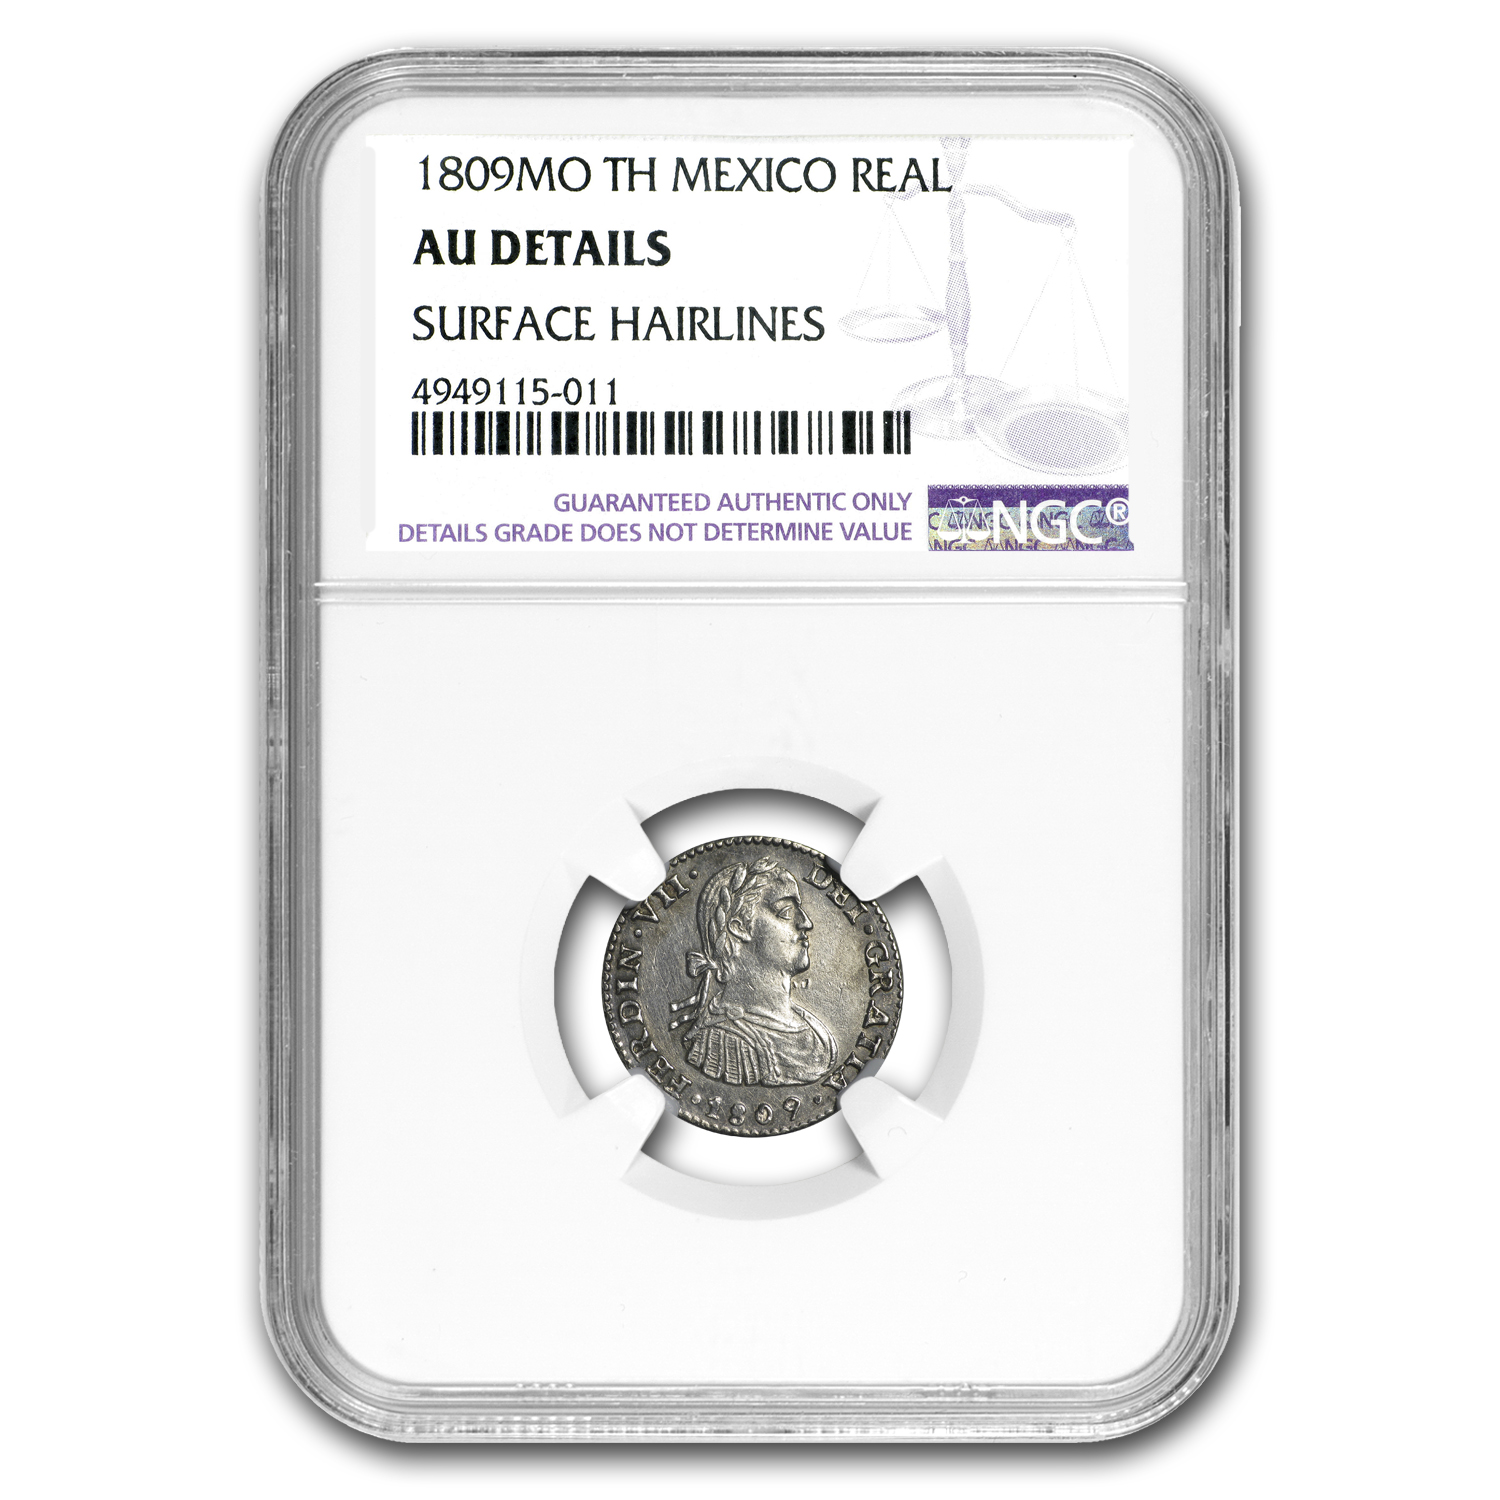 1809 Mo-TH Mexico 1 Real AU Details NGC